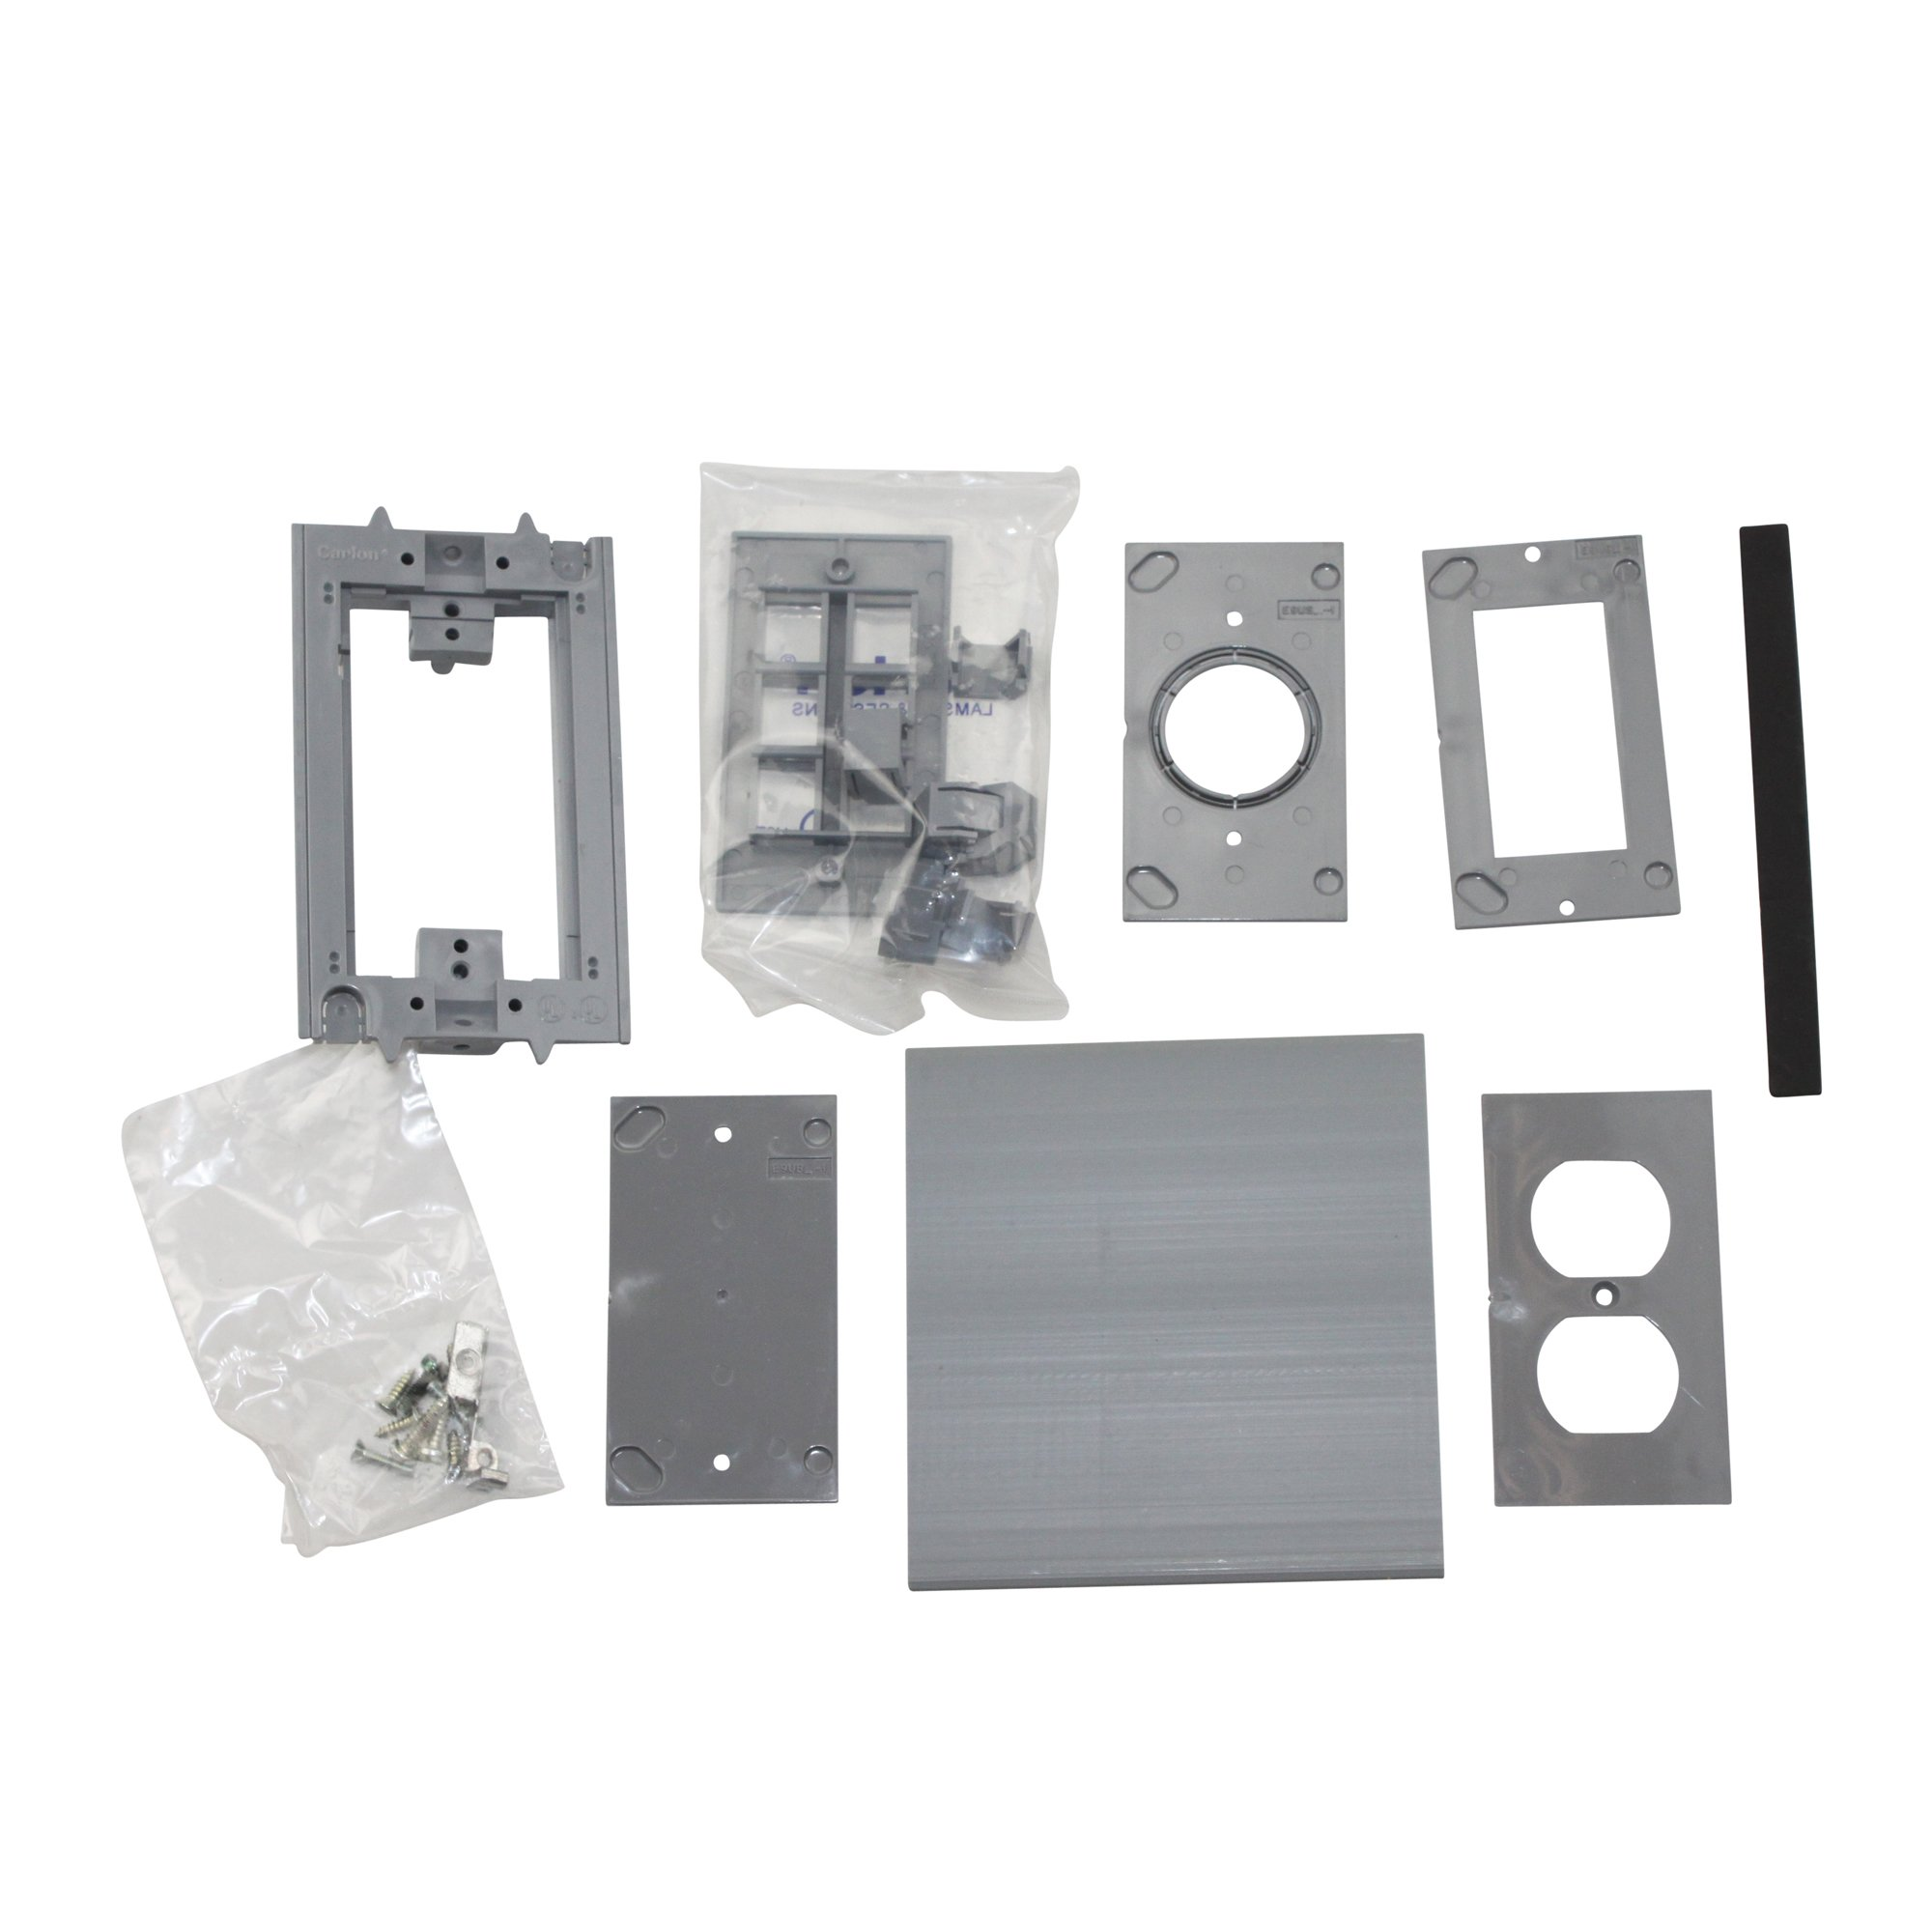 Thomas & Betts E976AK2 Floor Box Activation Cover Kit 2, Rect. (Pack Of 3)